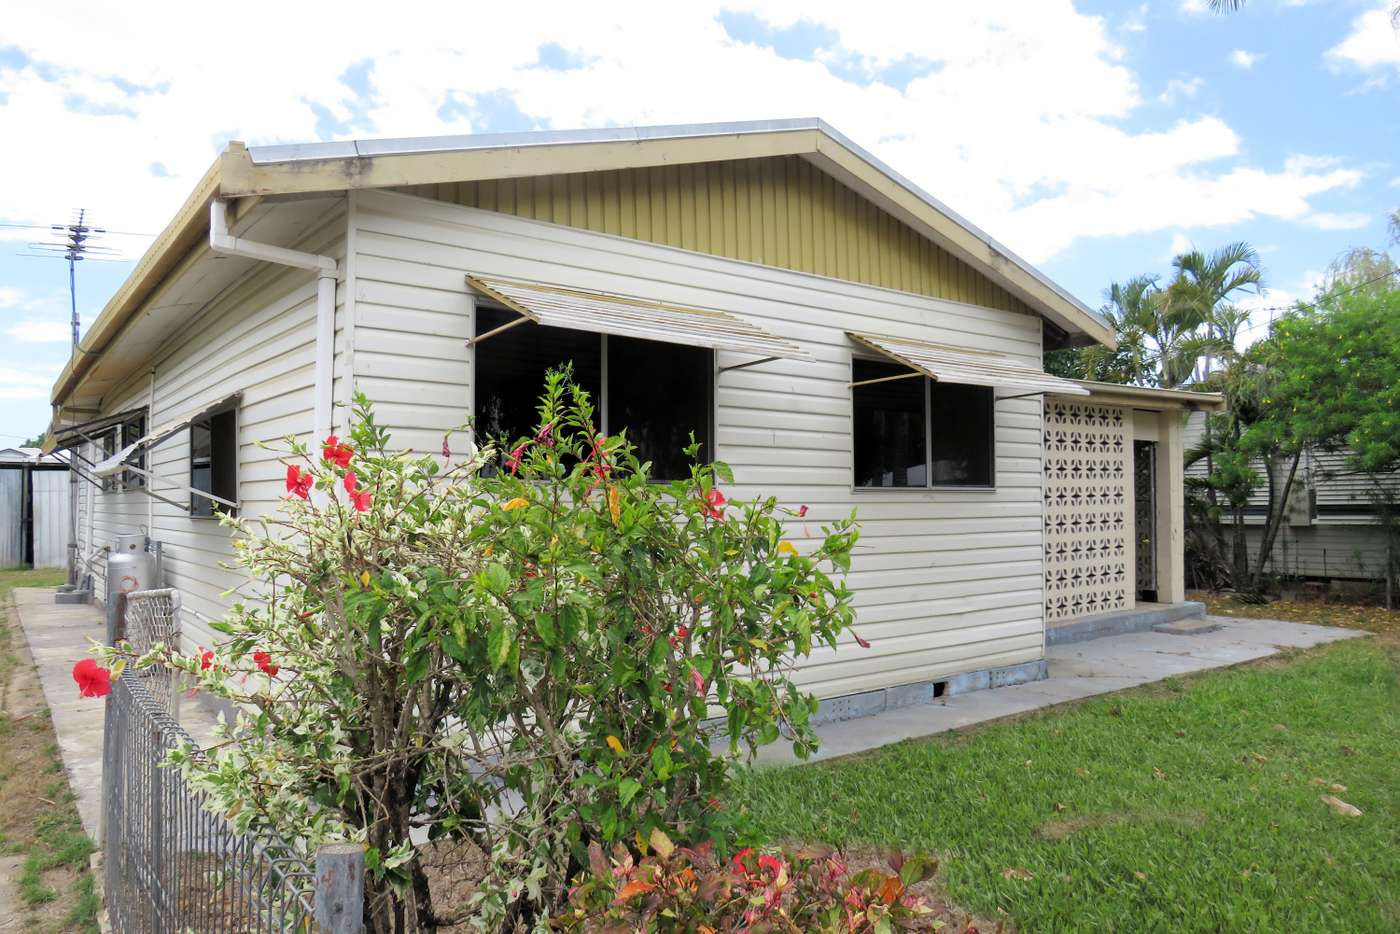 Main view of Homely house listing, 48 Gerard Street, Currajong QLD 4812